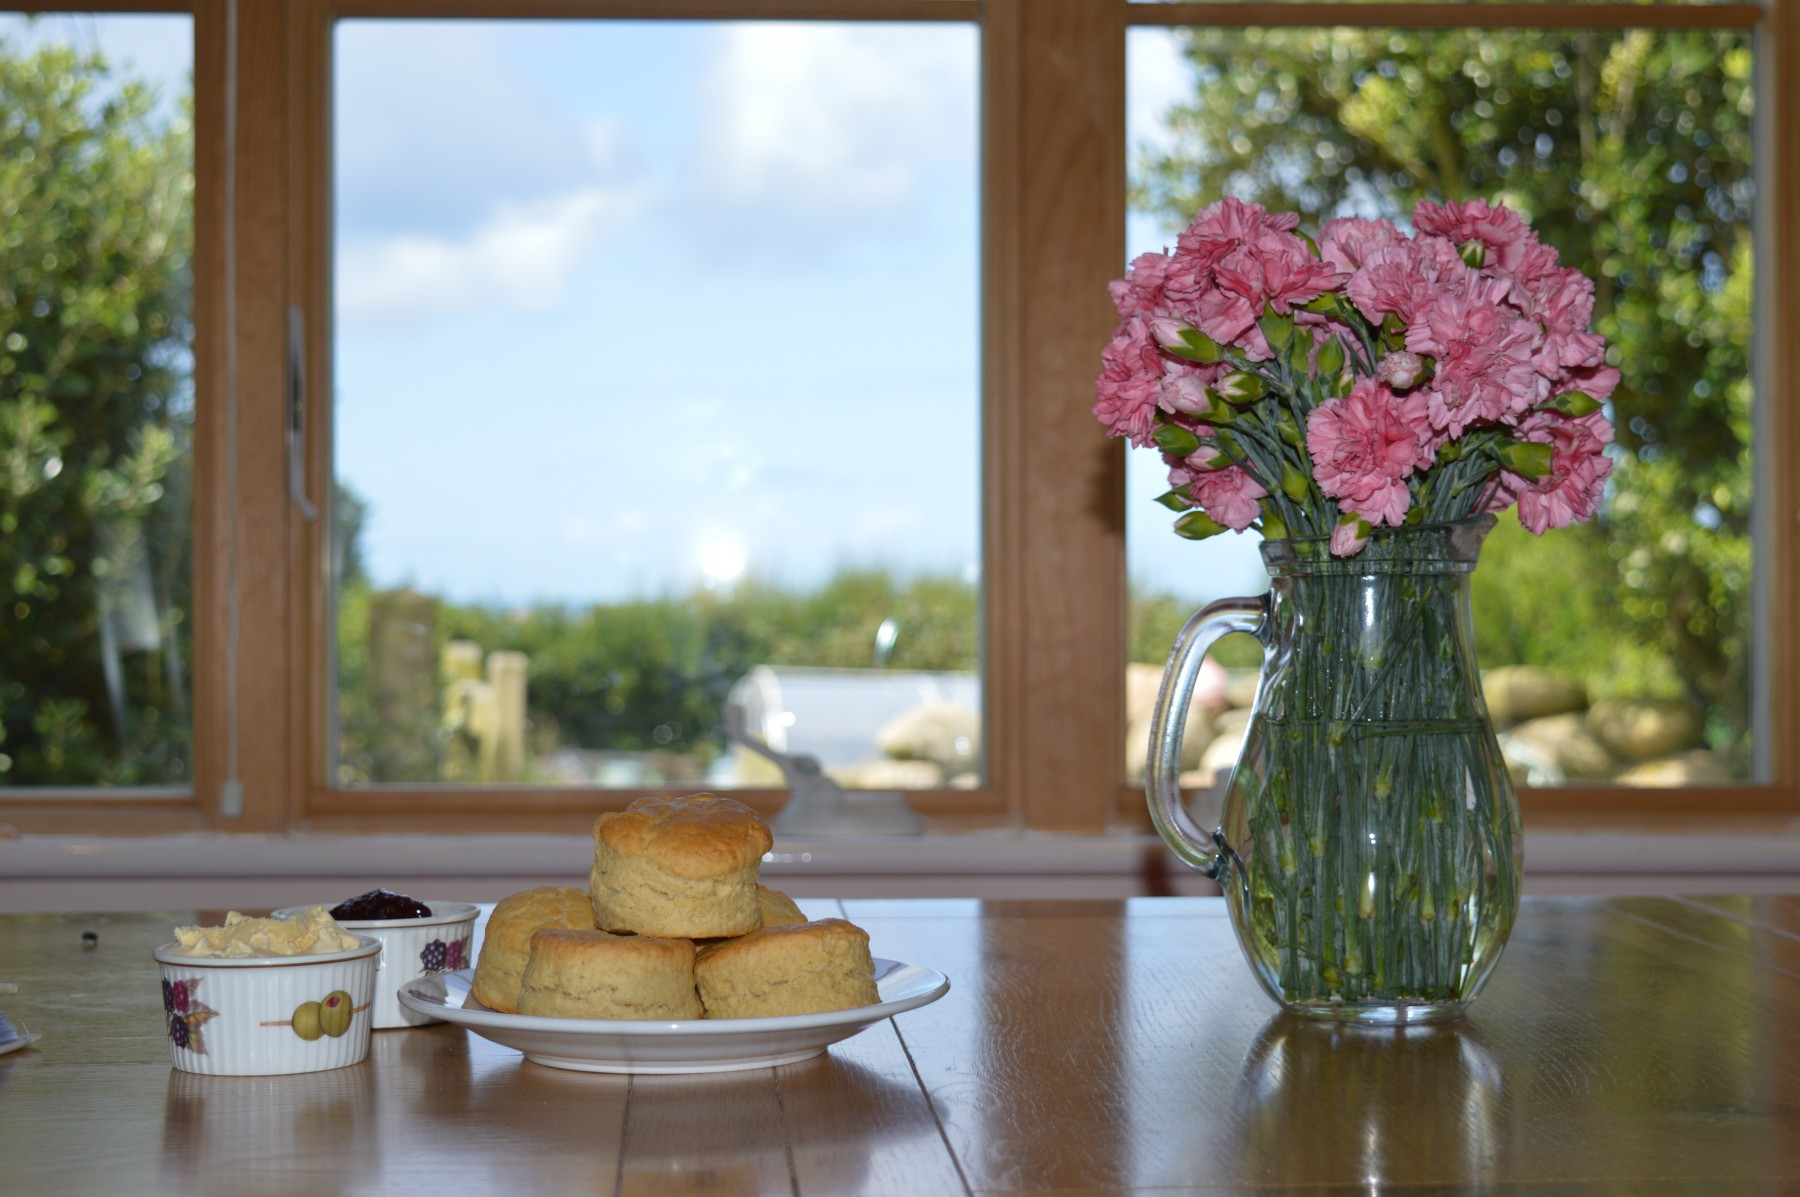 The Croft cream tea and flowers